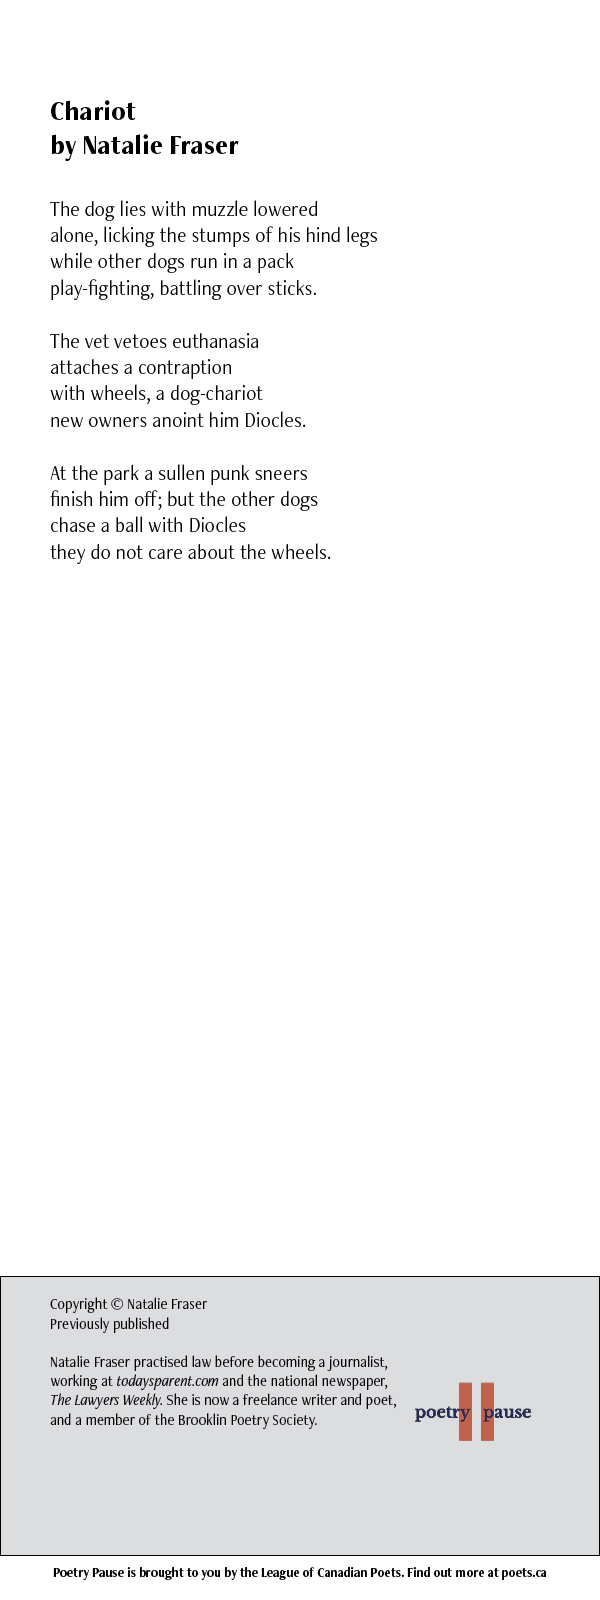 Poem title: Chariot Poet name: Natalie Fraser Poem: The dog lies with muzzle lowered alone, licking the stumps of his hind legs while other dogs run in a pack play-fighting, battling over sticks. The vet vetoes euthanasia attaches a contraption with wheels, a dog-chariot new owners anoint him Diocles. At the park a sullen punk sneers finish him off; but the other dogs chase a ball with Diocles they do not care about the wheels. End of Poem. Credits: Copyright © Natalie Fraser Previously published Natalie Fraser practised law before becoming a journalist, working at todaysparent.com and the national newspaper, The Lawyers Weekly. She is now a freelance writer and poet, and a member of the Brooklin Poetry Society.